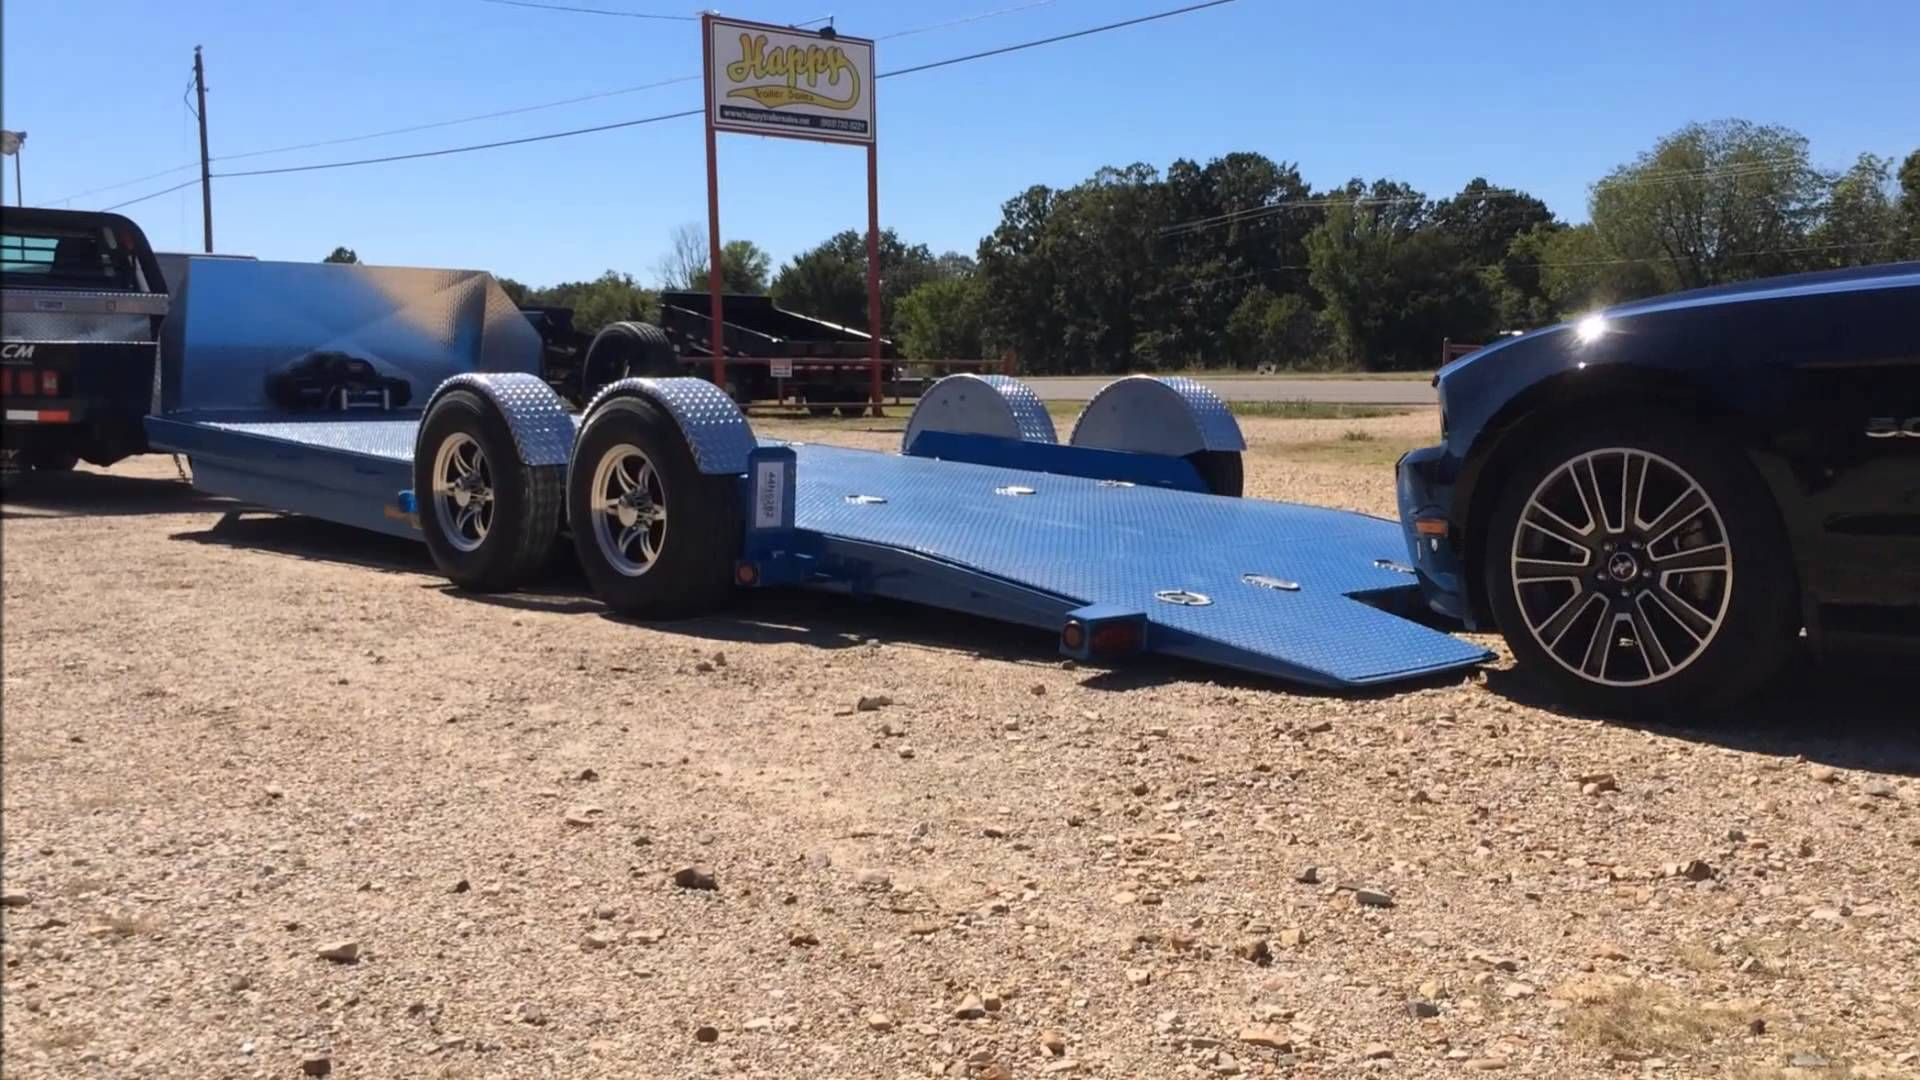 Maxey DropNLoad Air Ride Car Hauler Bagged Trailers